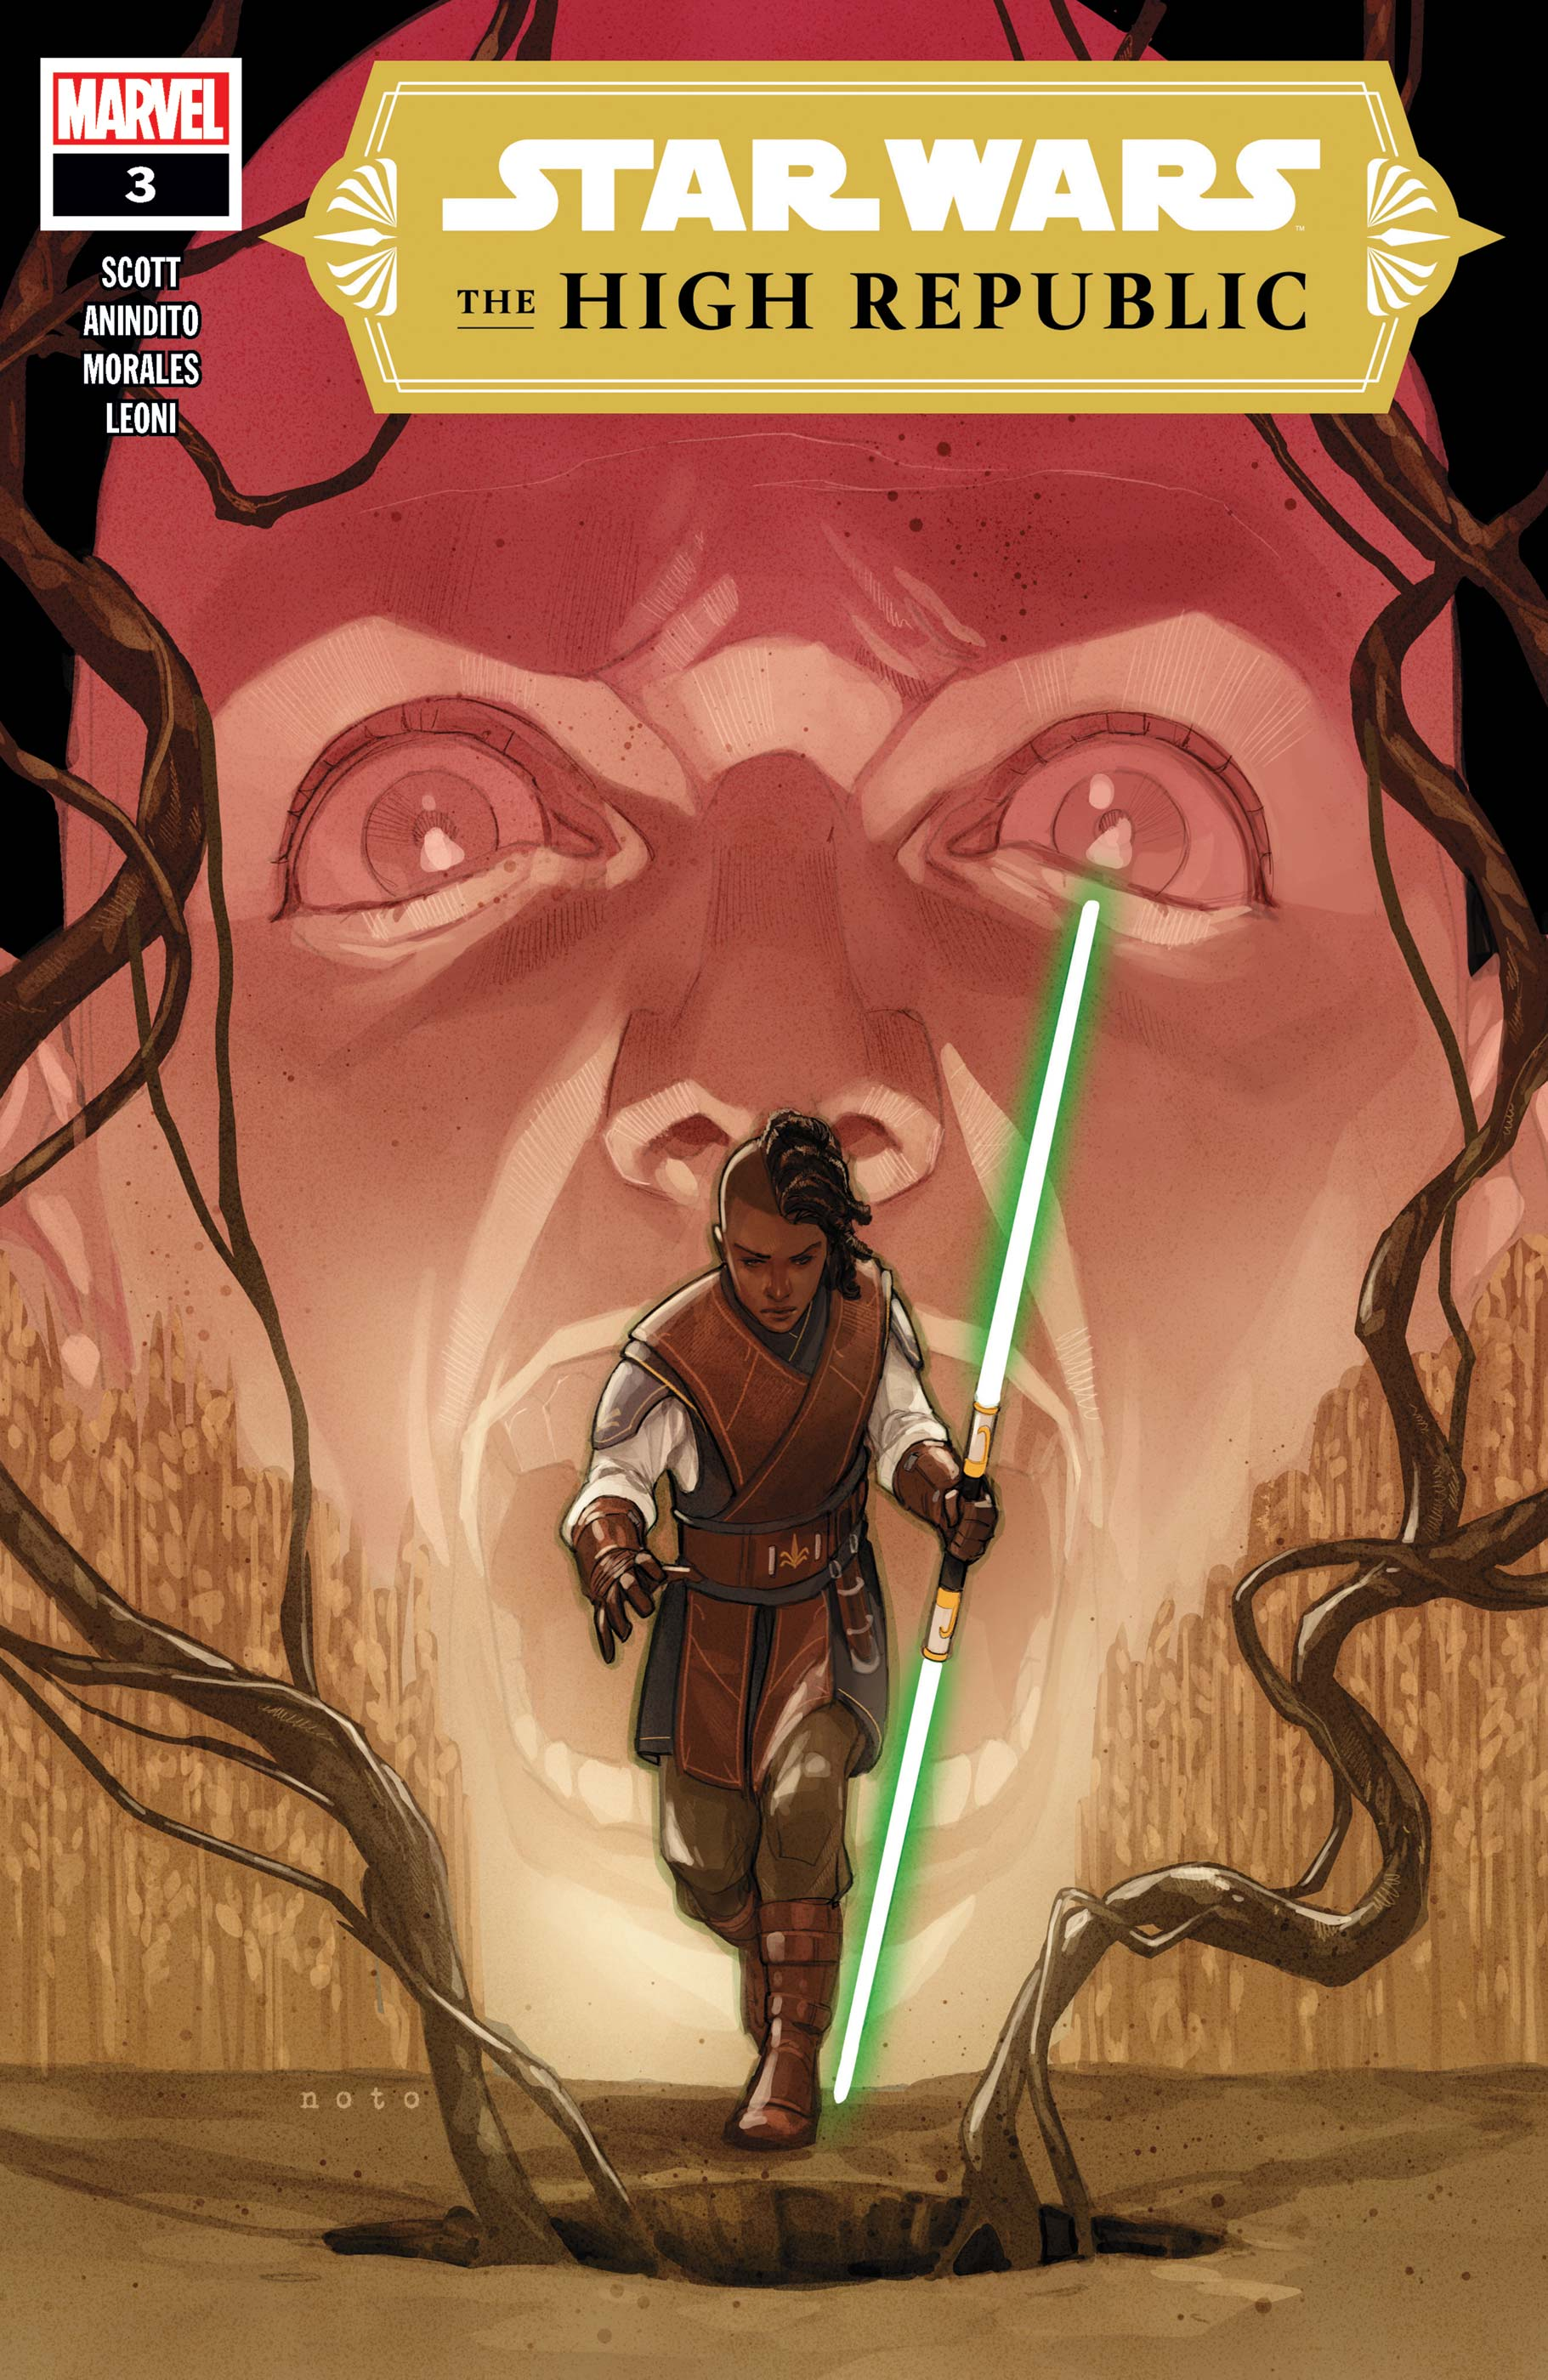 Star Wars: The High Republic #3 Cover by Phil Noto